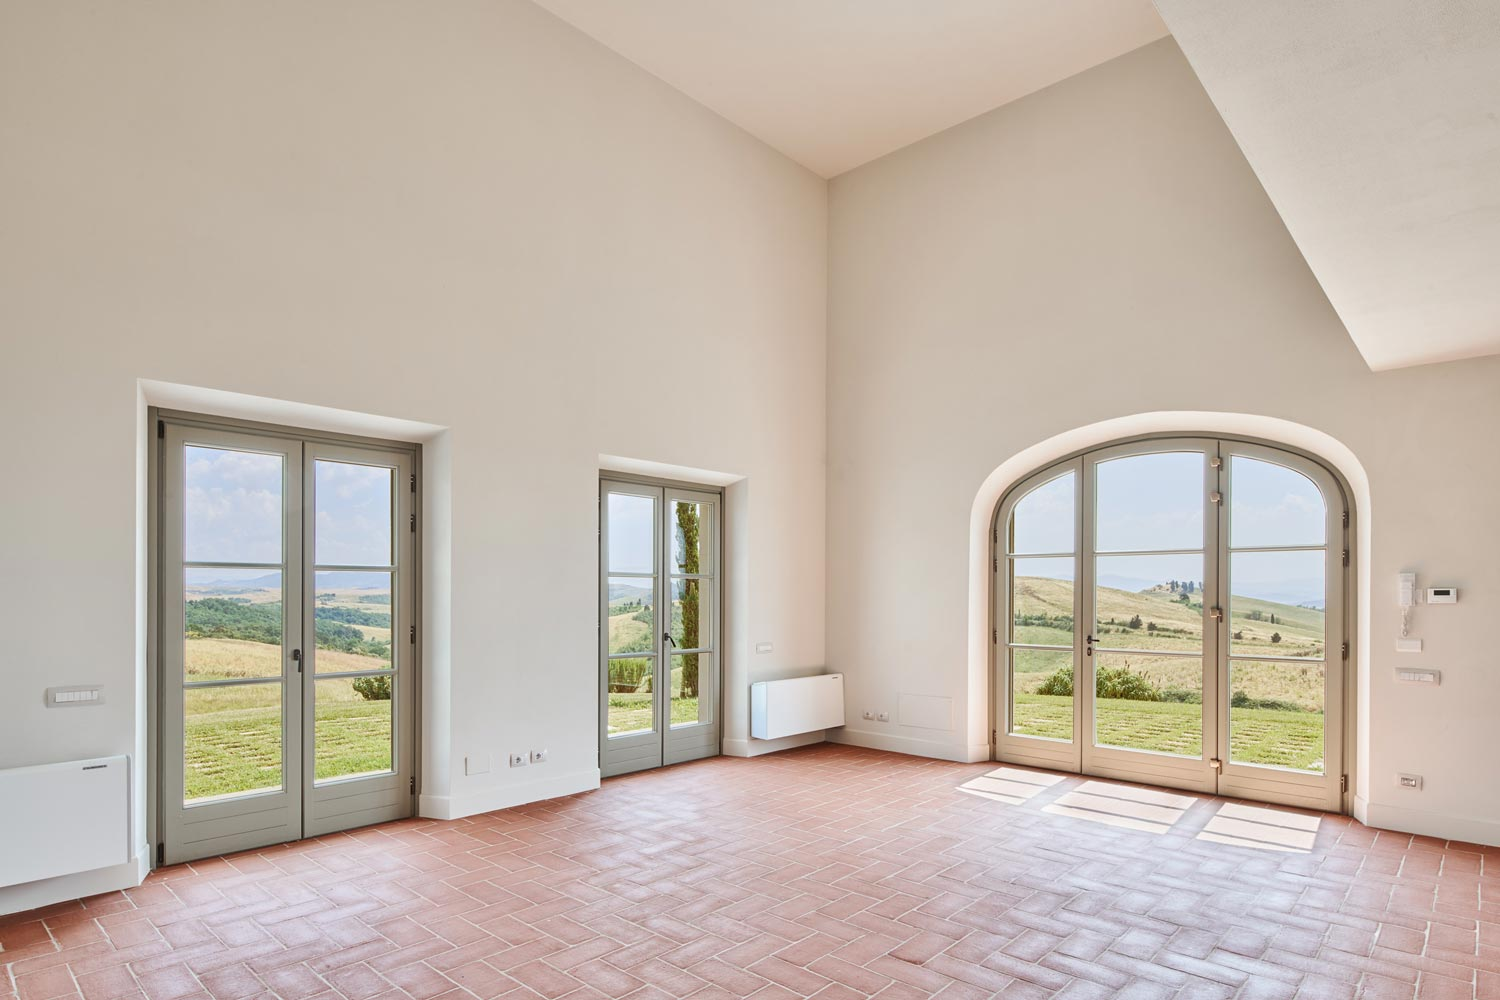 Picturesque French doors in Il Belvedere 4B - villa for sale in Tuscany